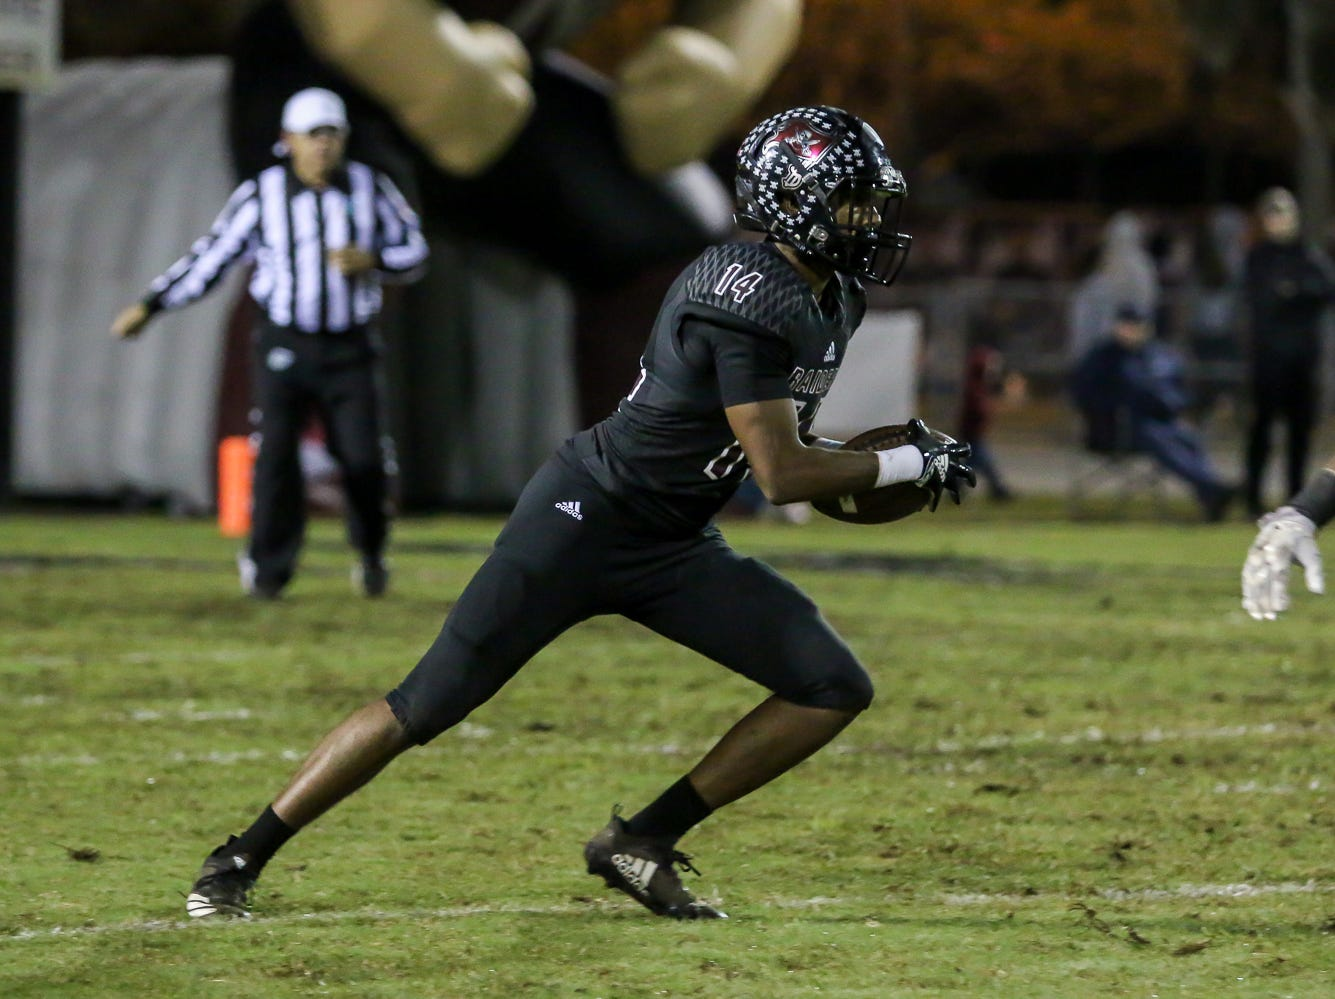 Navarre's Quinn Caballero (14) runs the ball back up the field against Escambia in the Region 1-6A Semifinal game at Navarre High School on Friday, November 16, 2018.